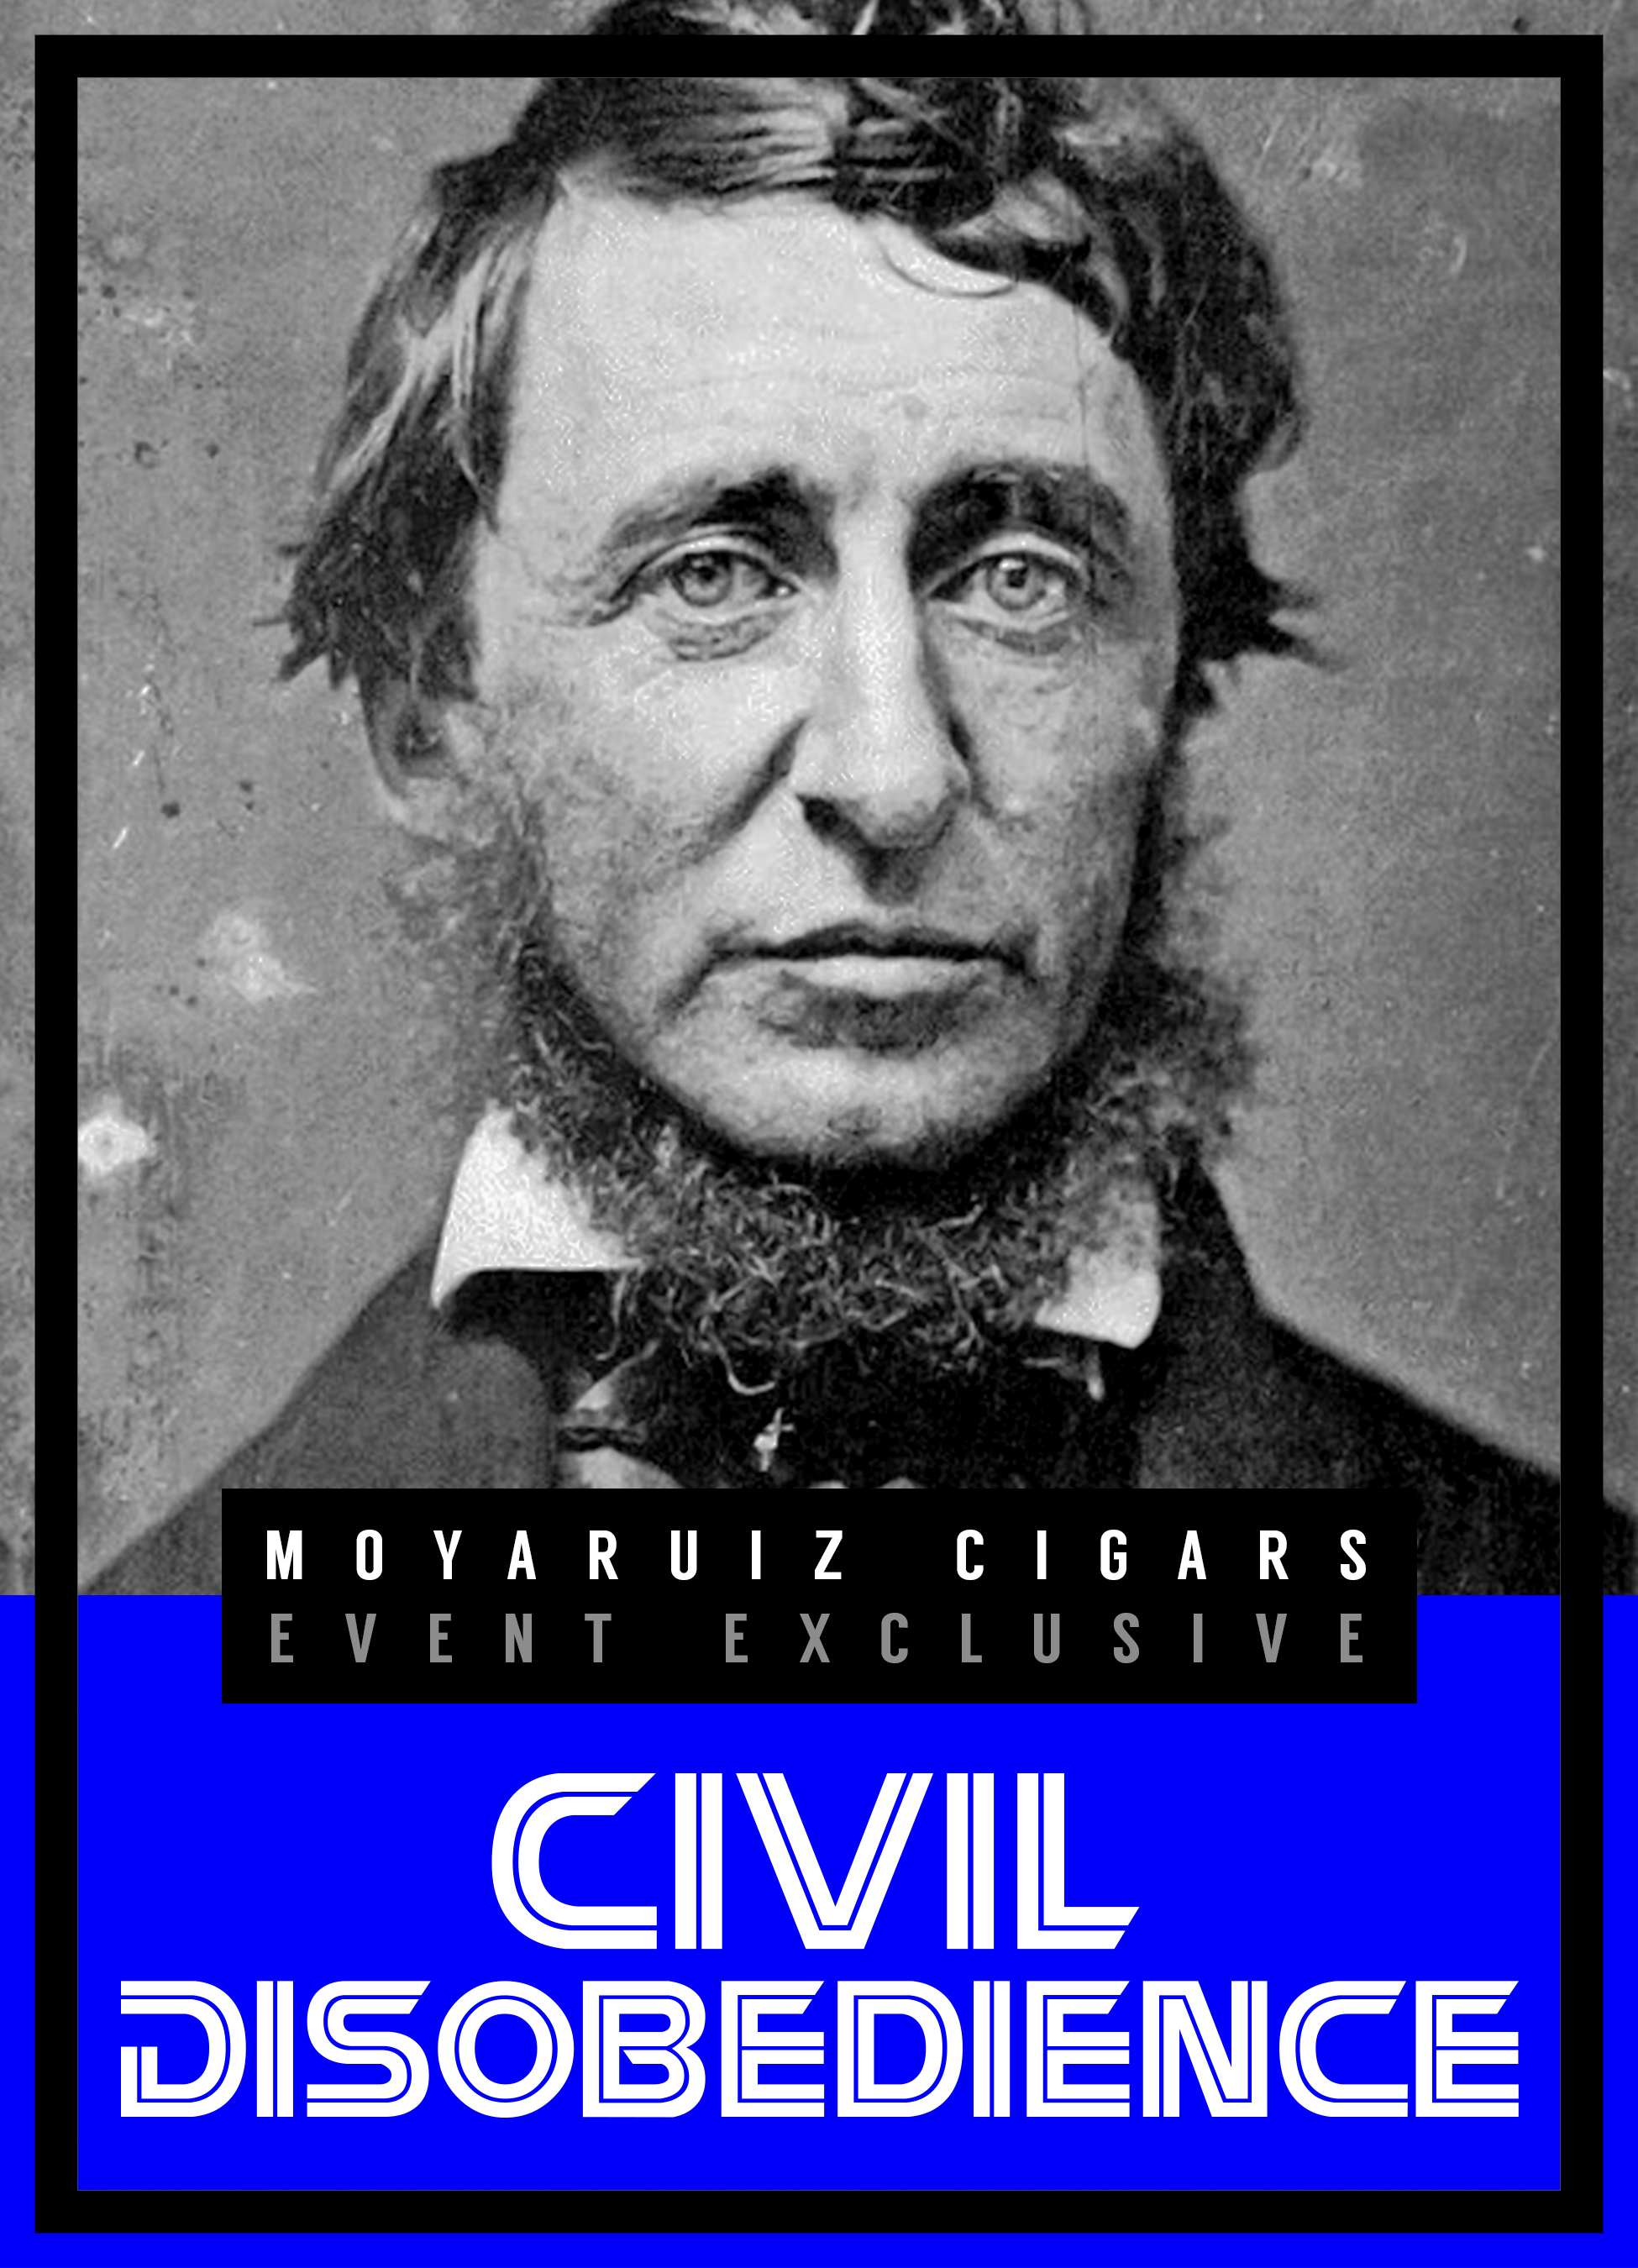 henry david thoreau civil disobedience essays Resistance to civil government (civil disobedience) is an essay by american  transcendentalist henry david  audio recording (full text) all things new: on  civil disobedience now by steven schroeder, essays in philosophy, vol 8, no.